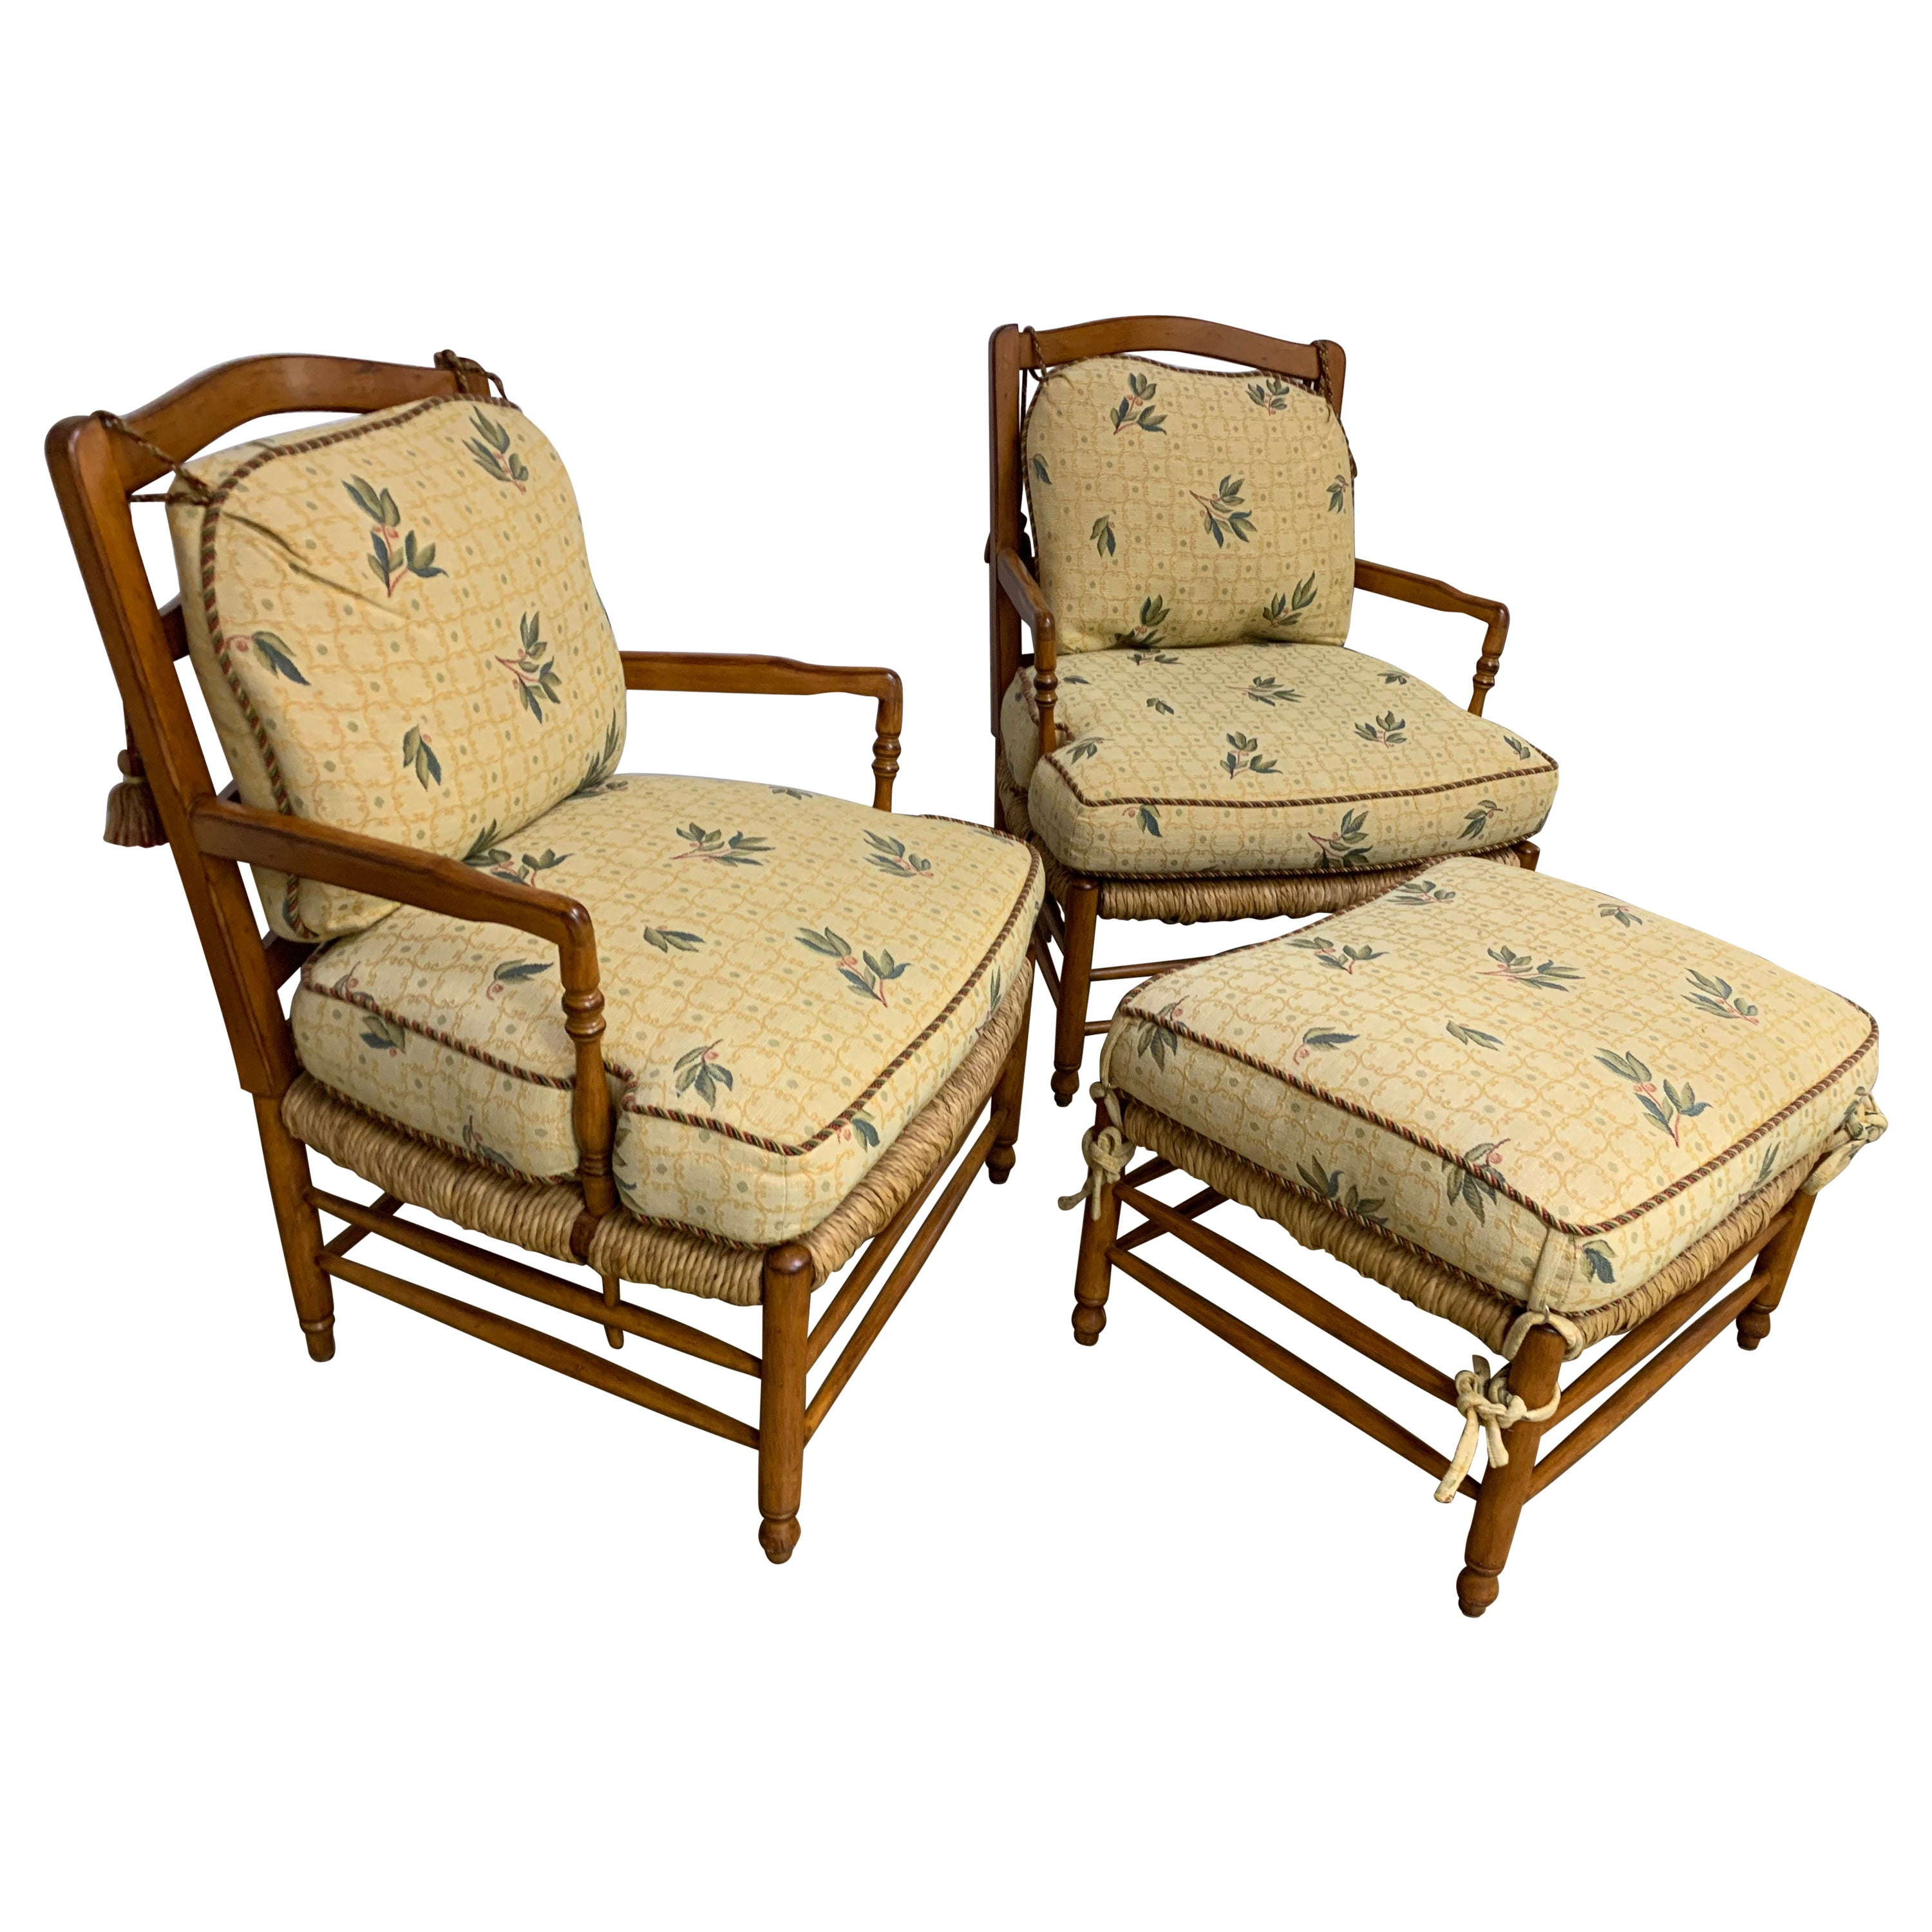 Brunschwig And Fils French Country Arm Chairs And Ottoman Set Of 3